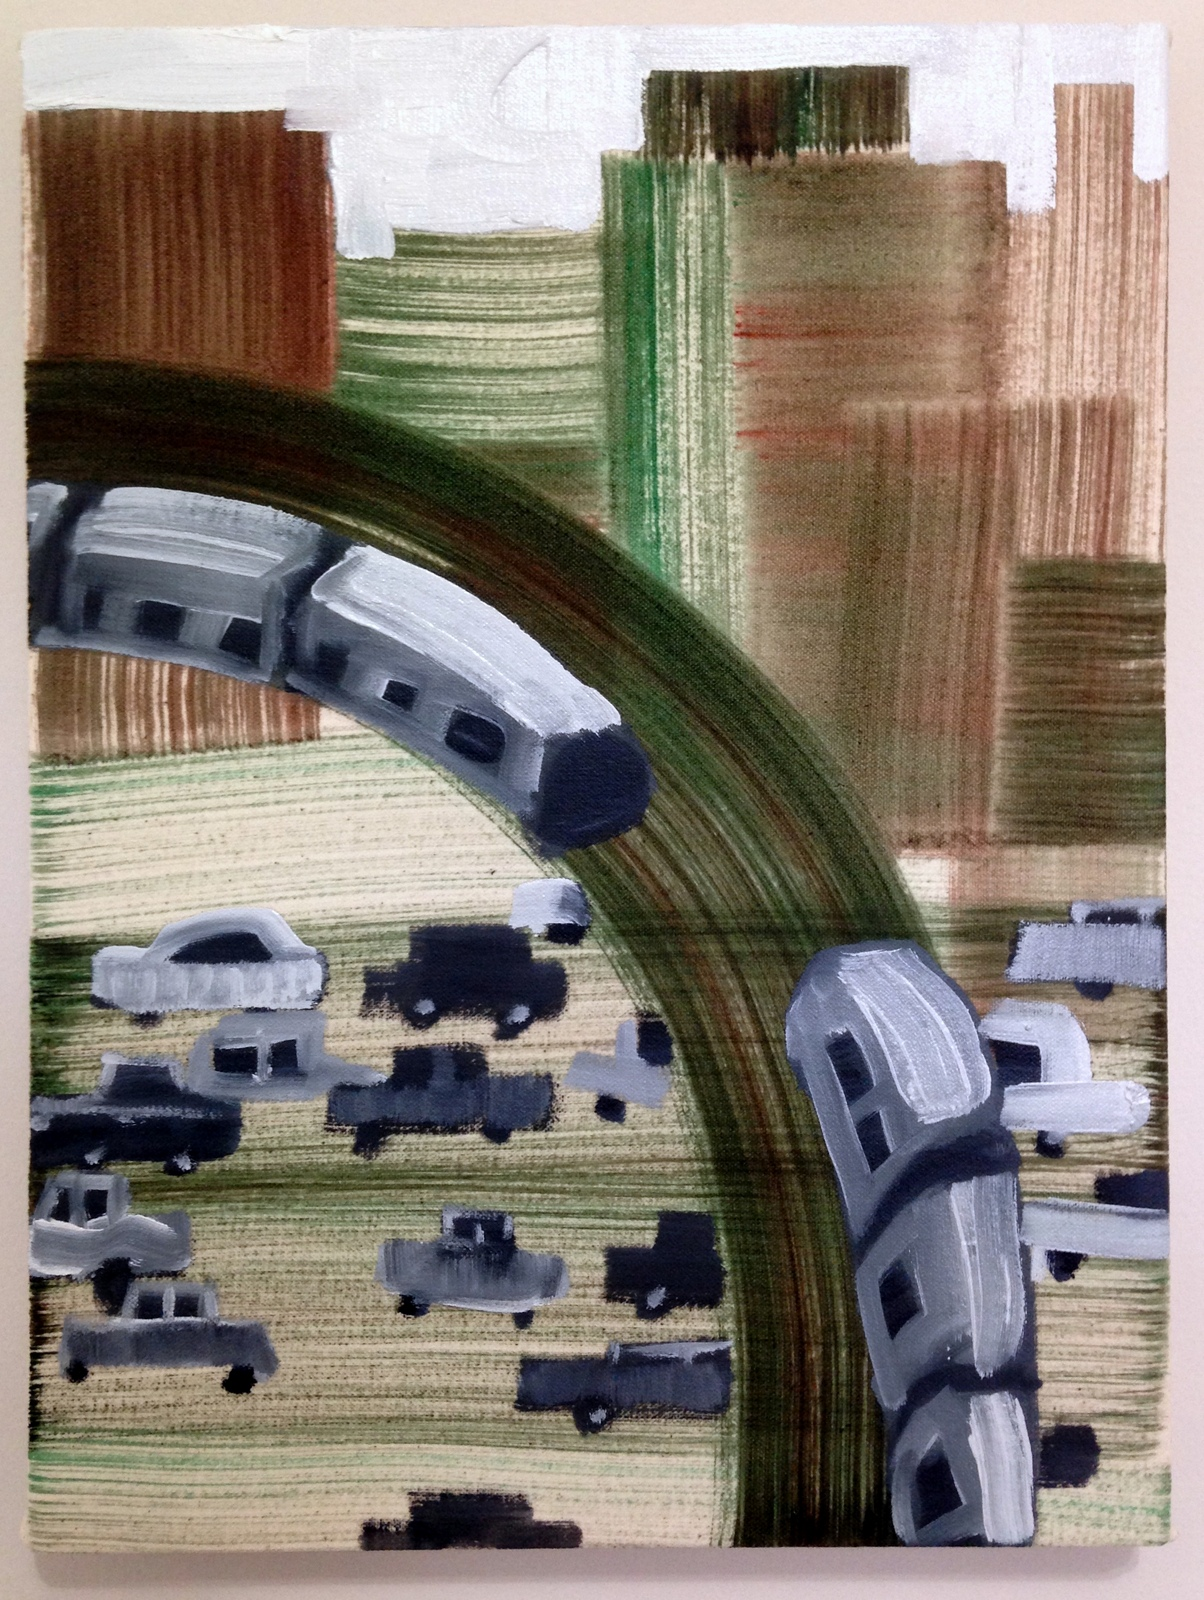 Train turning left (W and N in Lon Island City) 40 x 30 cm oil on cotton 2017